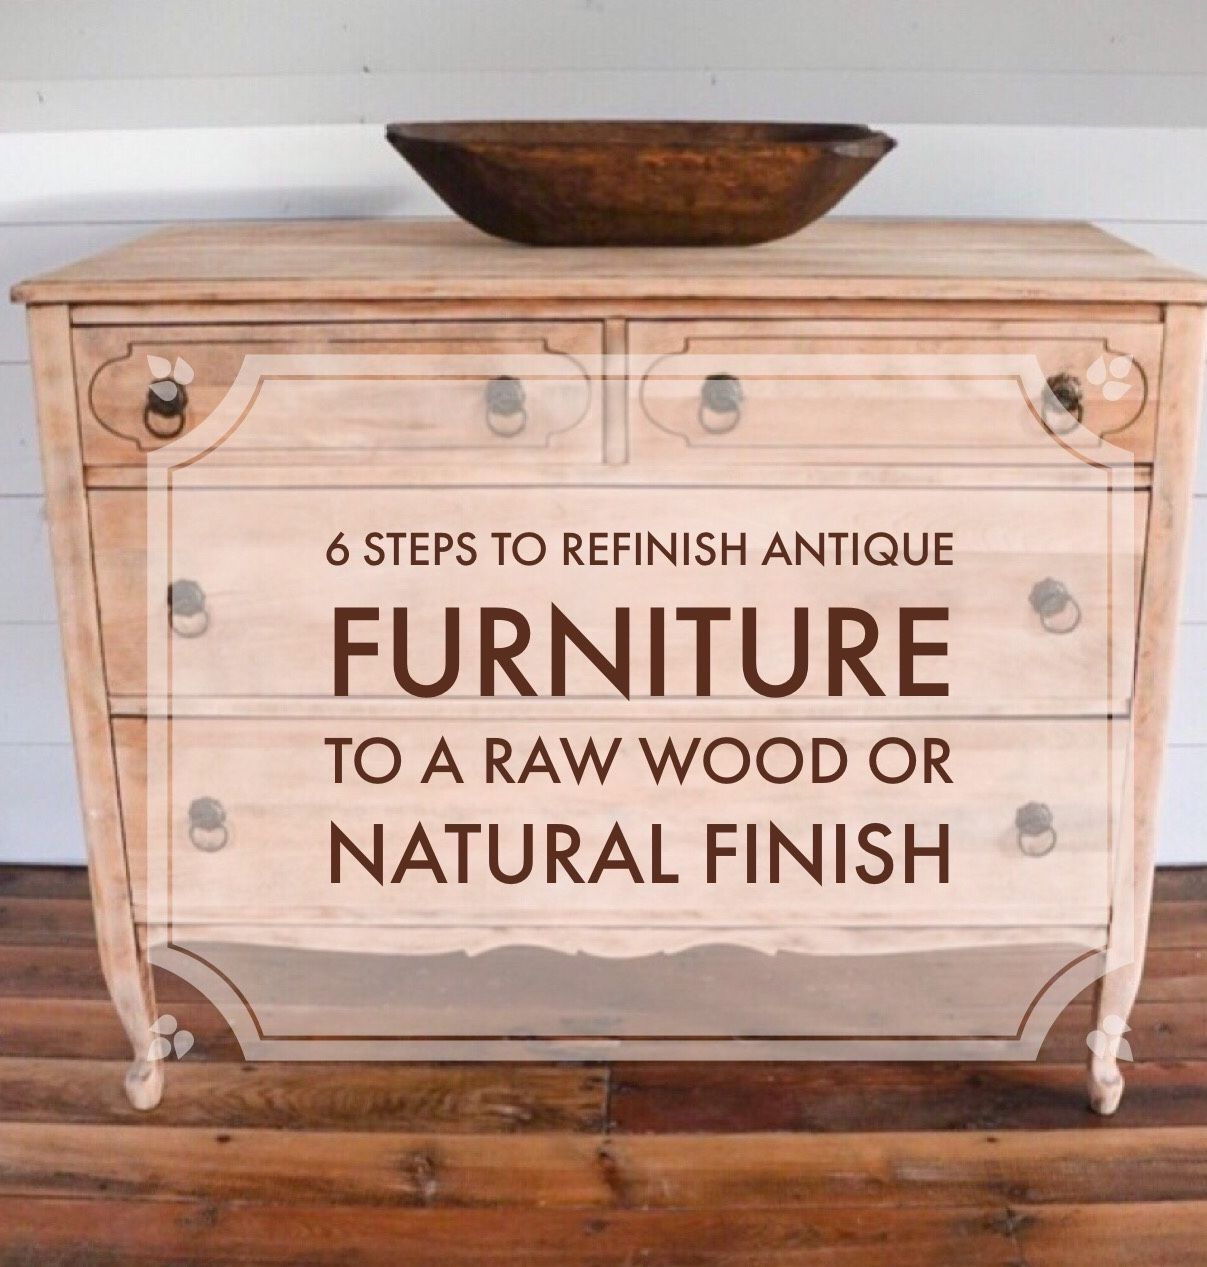 6 Steps To Refinish Antique Furniture To A Natural Or Raw Wood Finish B Vintage Style Raw Wood Furniture Raw Wood Wood Furniture Diy